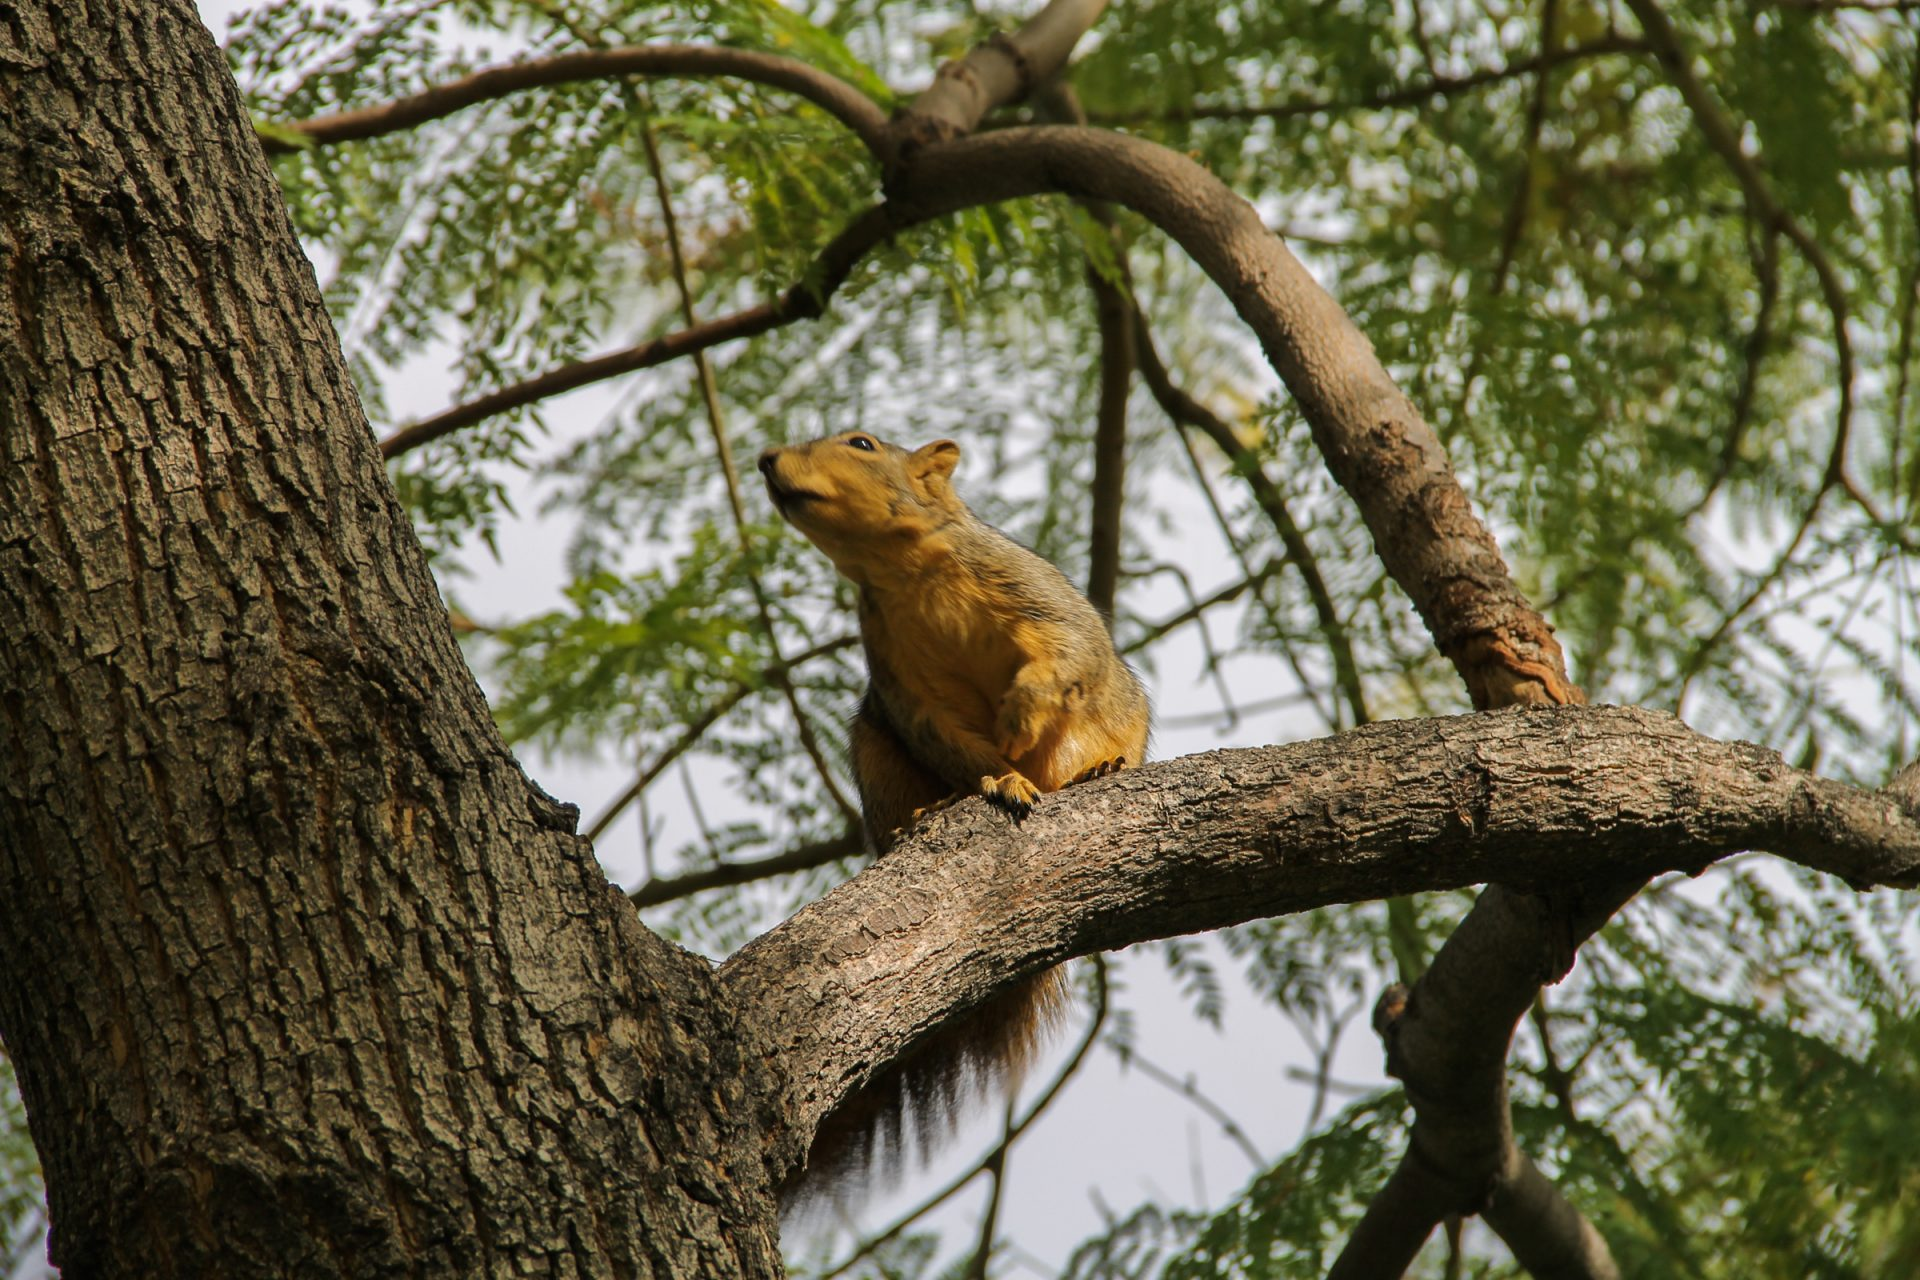 Squirrel on a Branch in a Tree